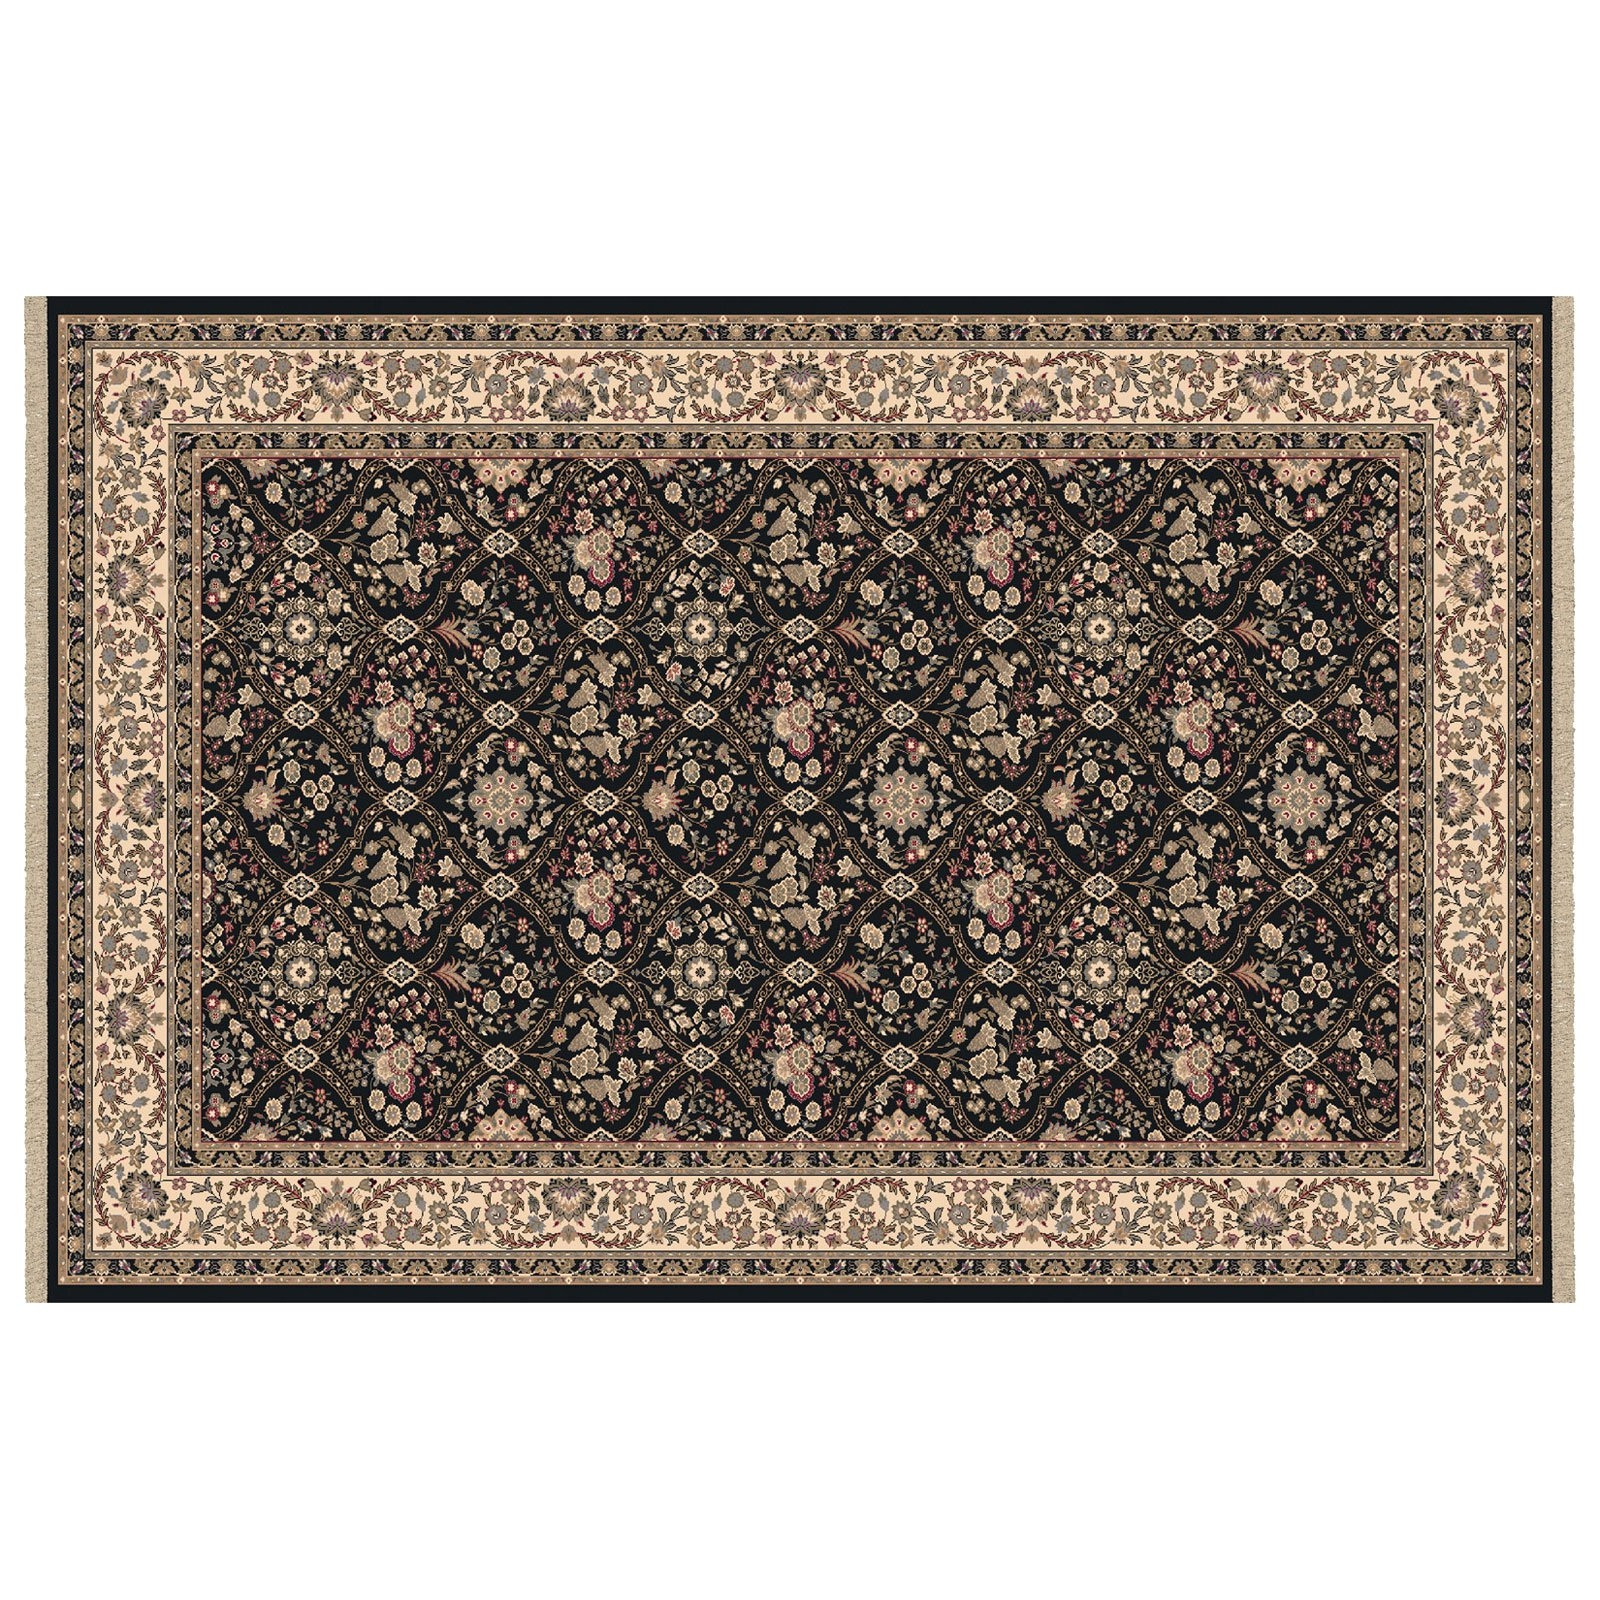 Dynamic Rugs Brilliant Collection Wool Hearth Rug Black Onyan In Hearth Rugs (Image 3 of 15)